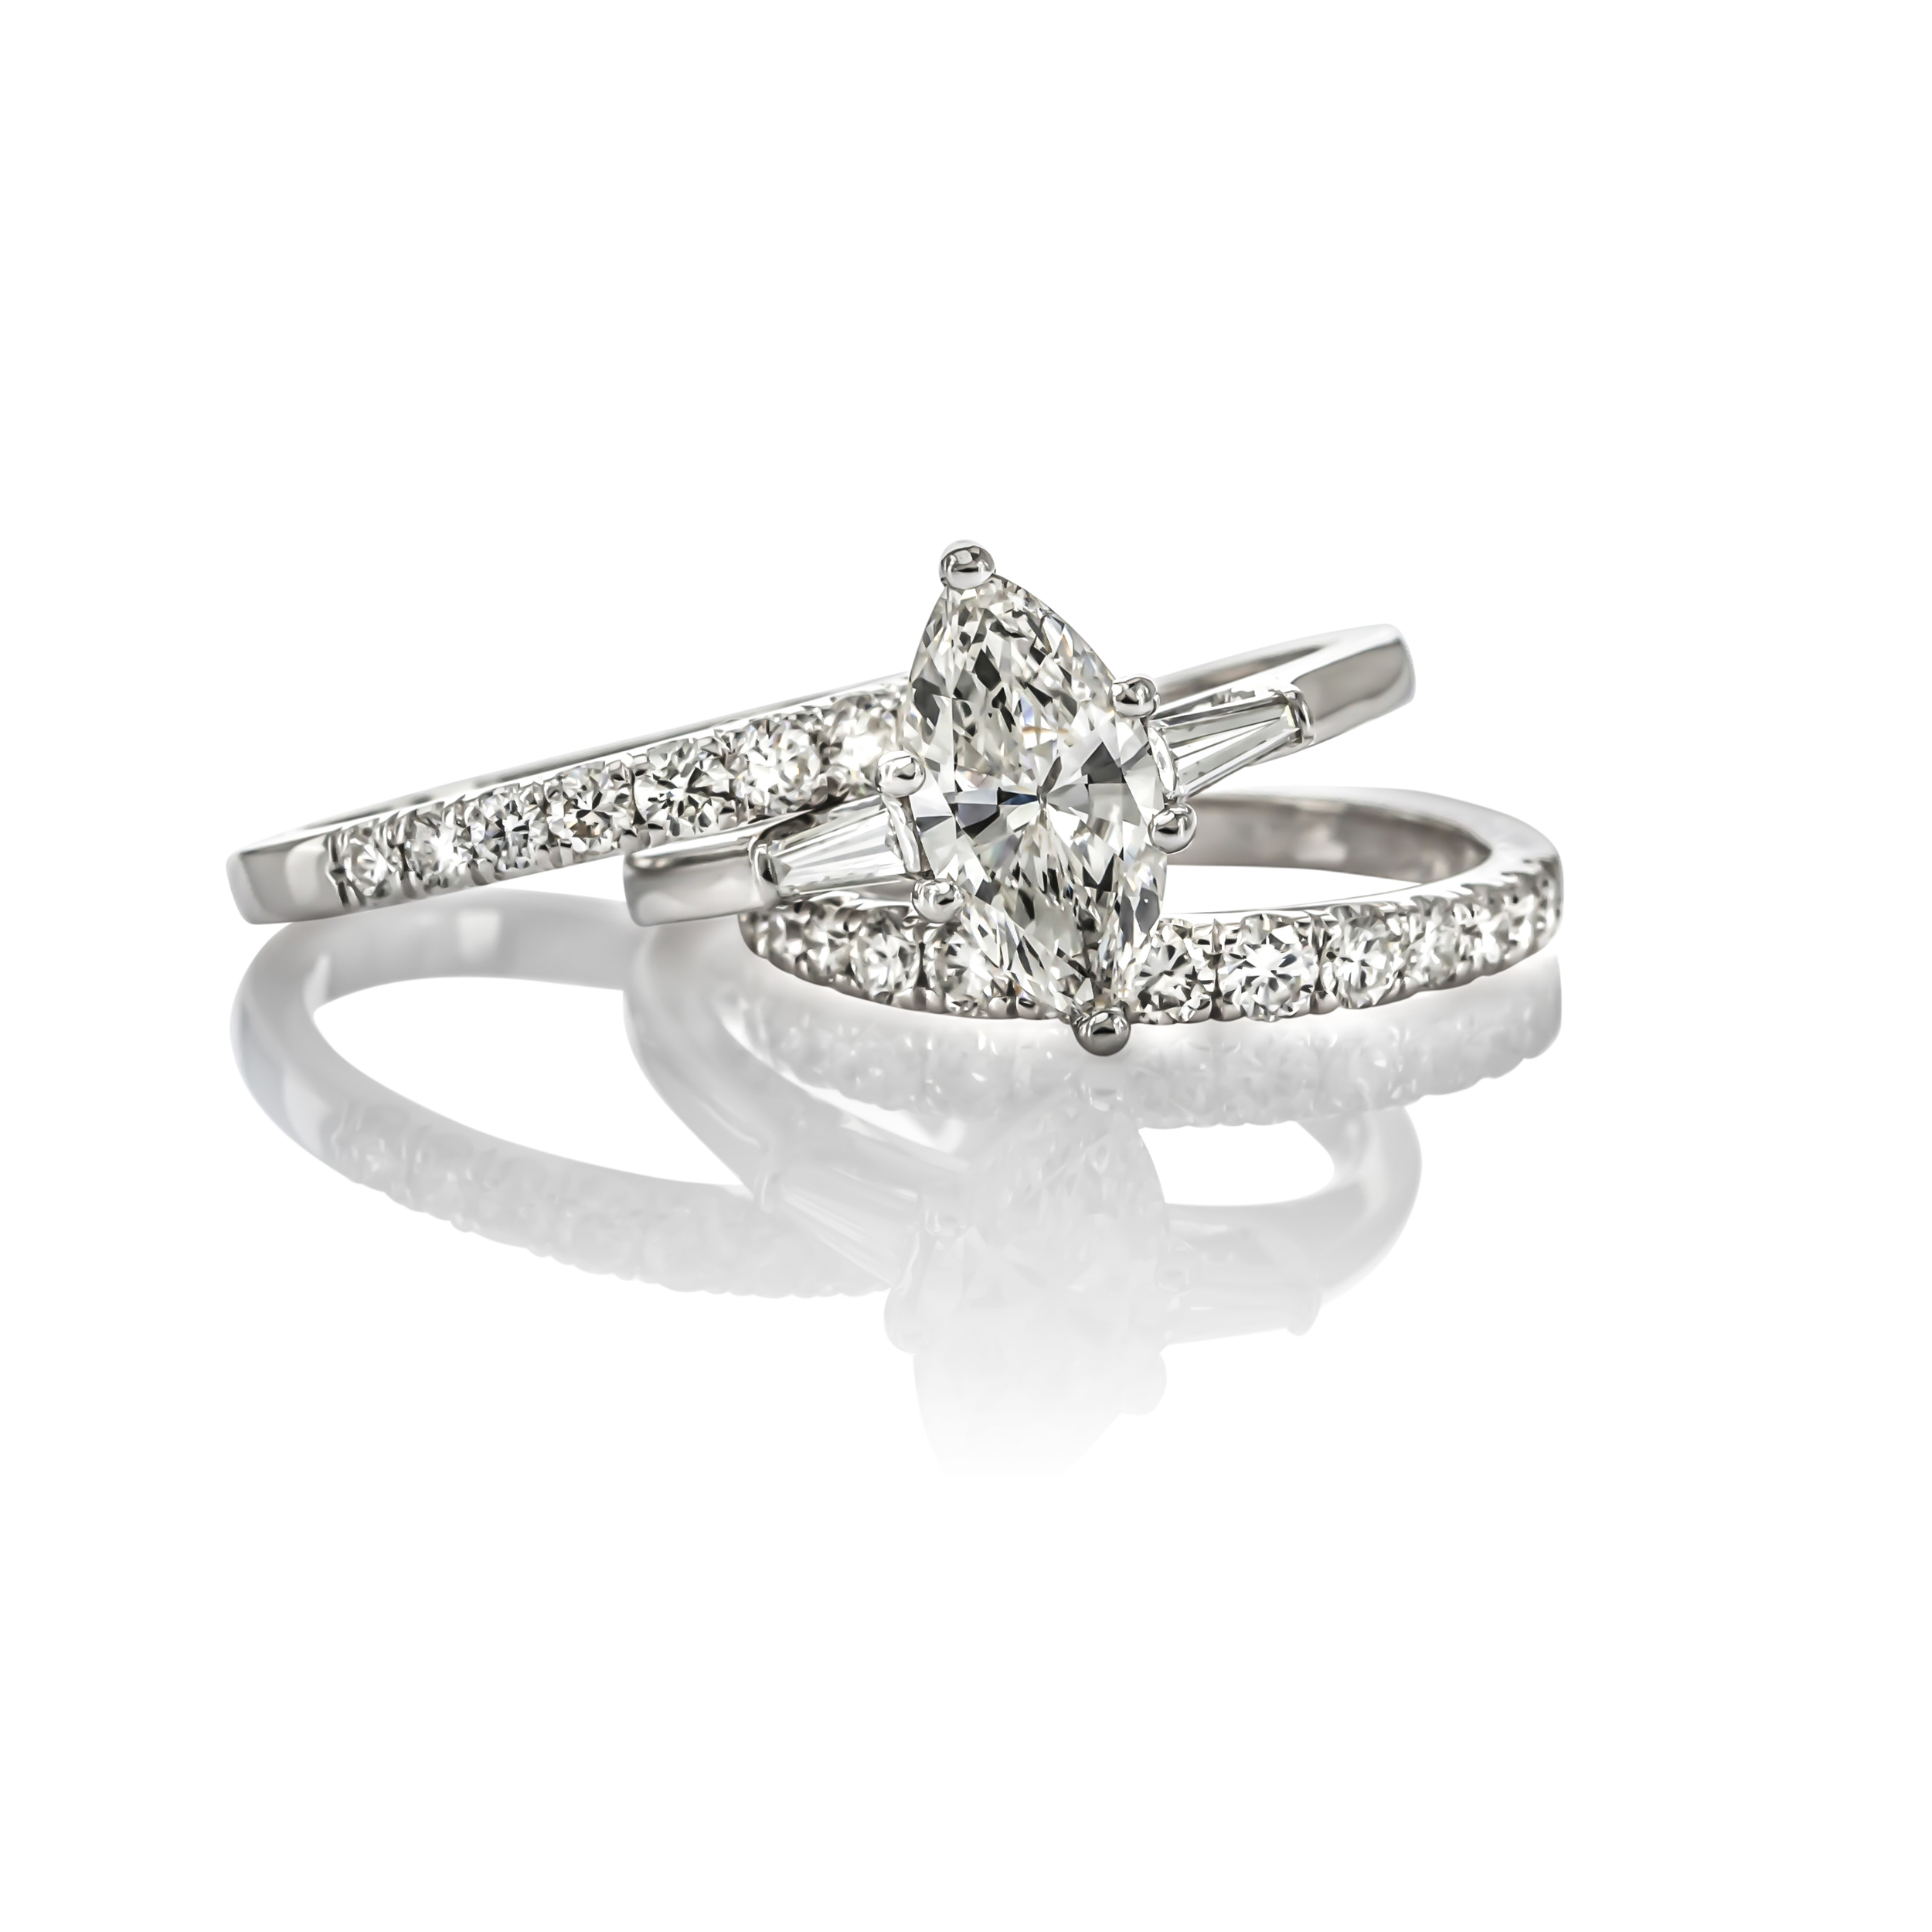 CUSTOM MARQUISE DIAMOND ENGAGMENT RING AND MATCHING DIAMOND WEDDING BAND